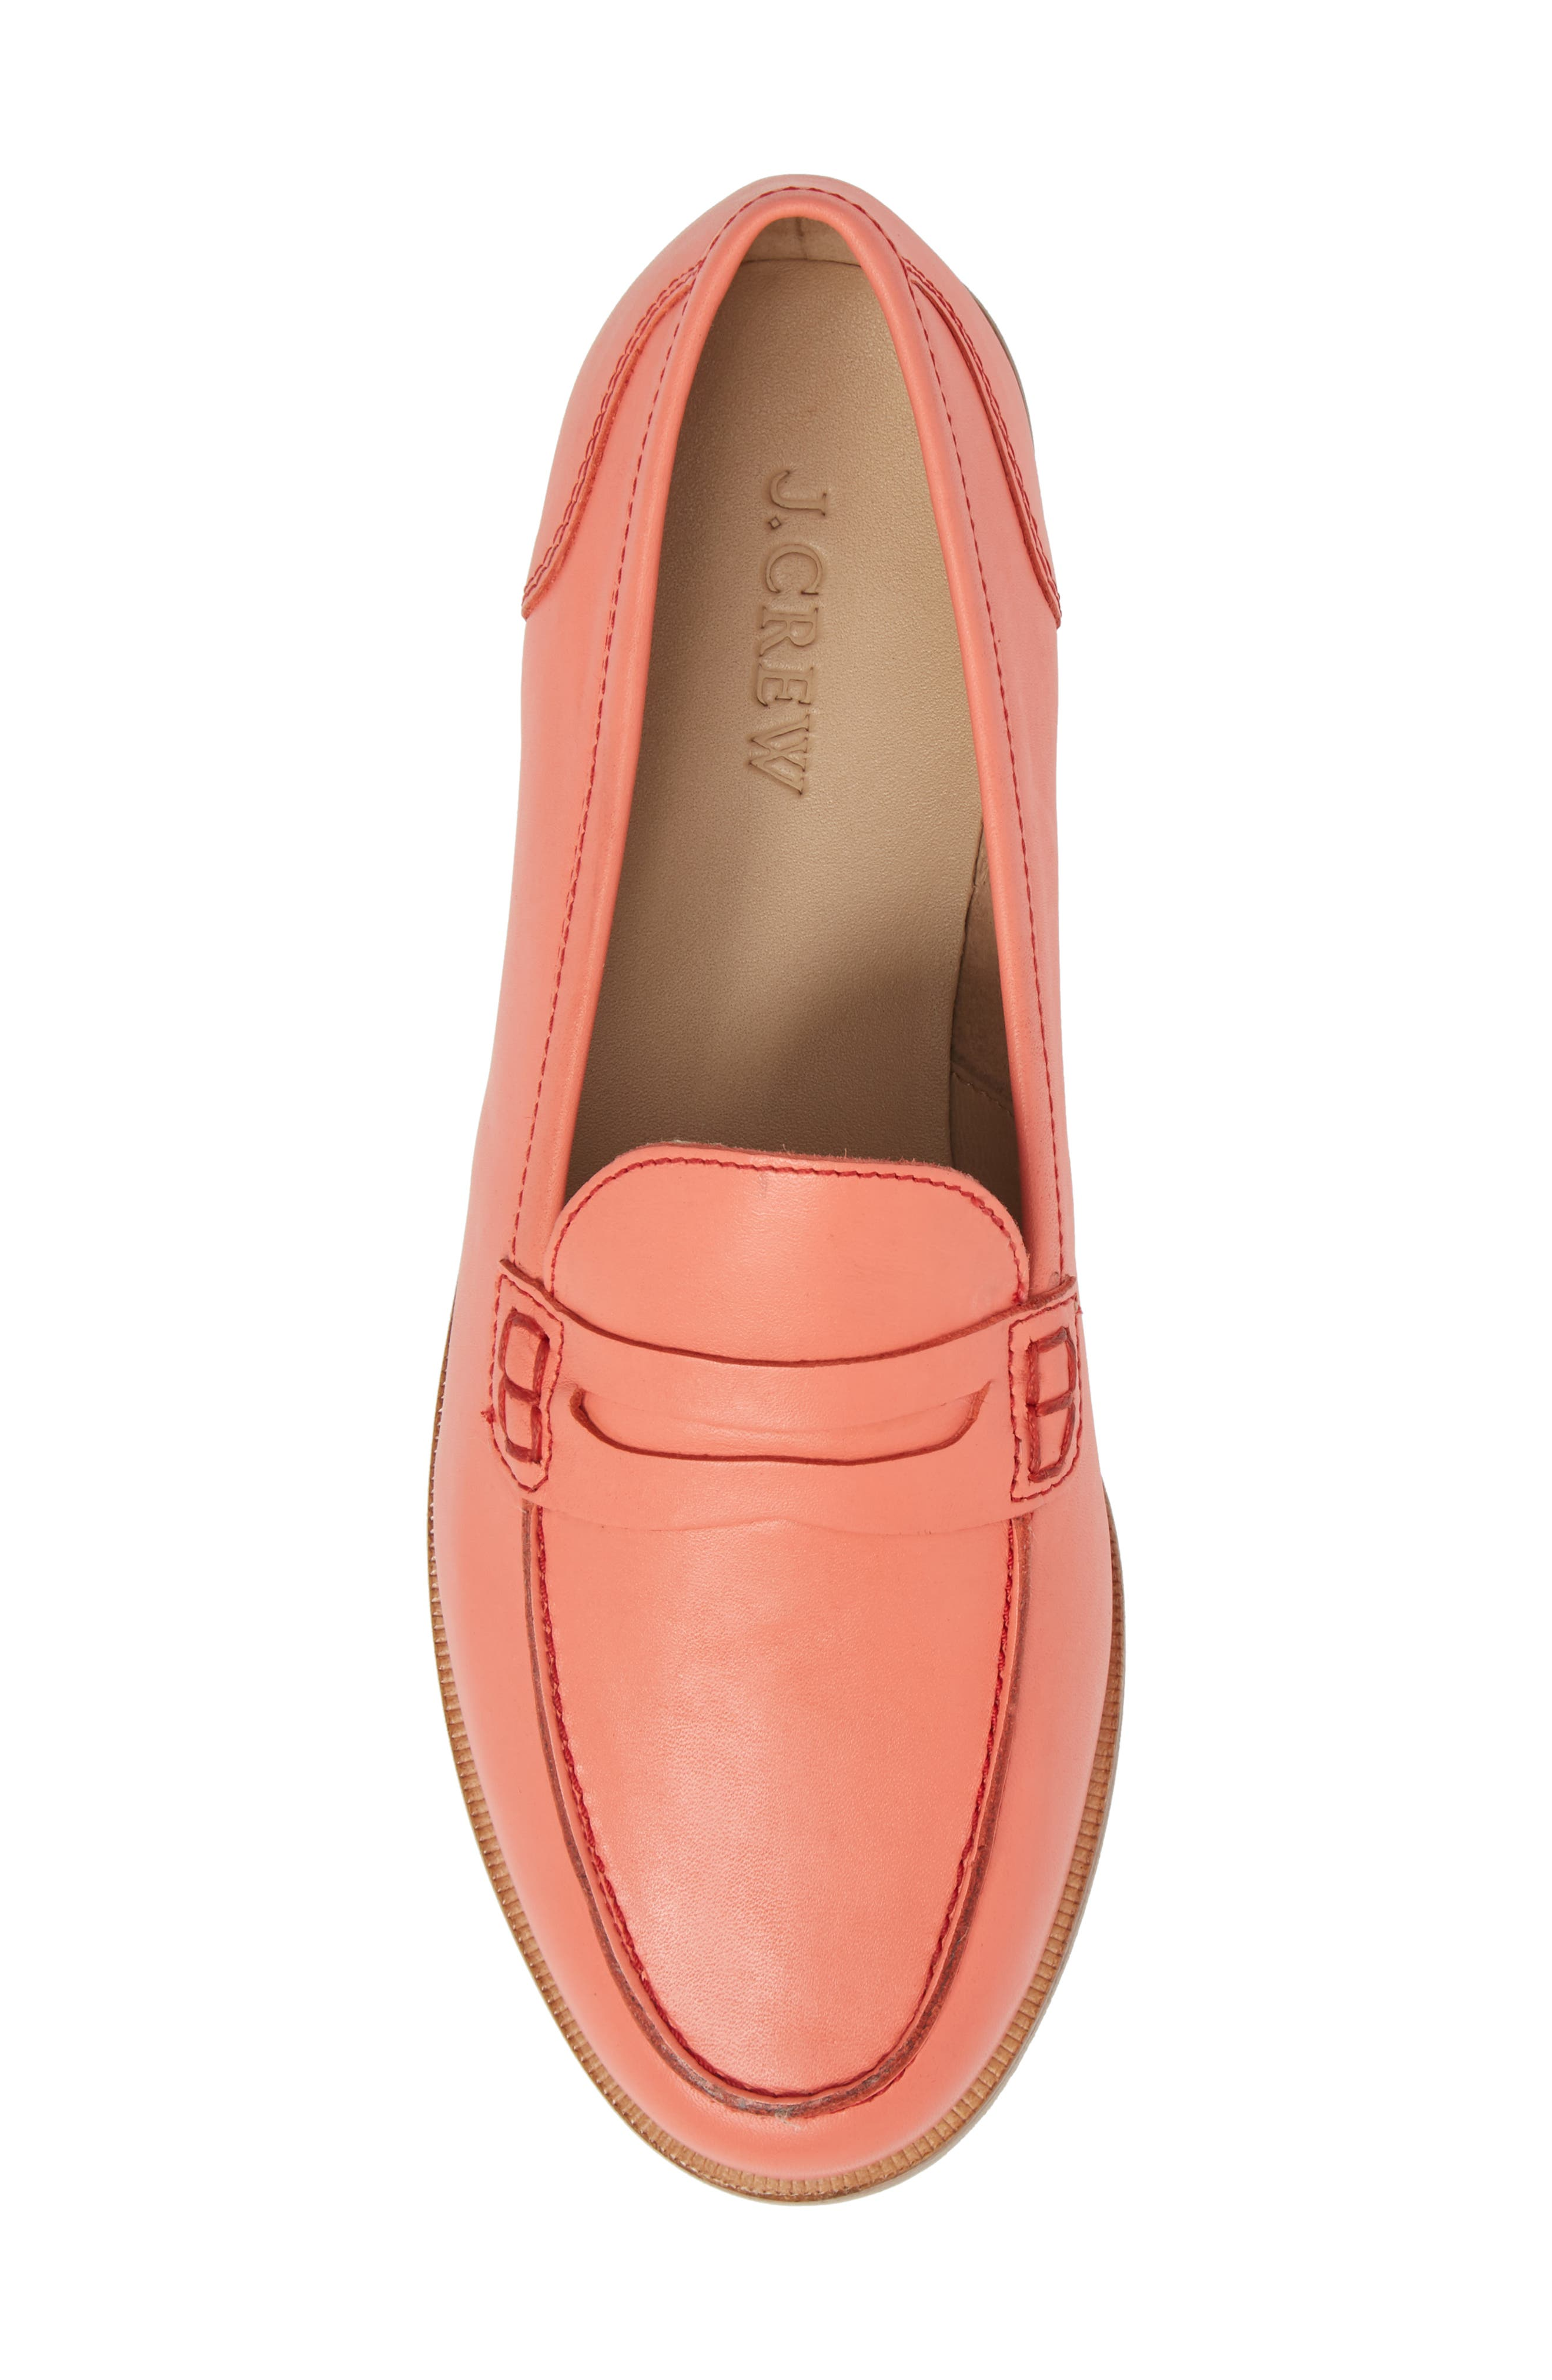 Ryan Penny Loafer,                             Alternate thumbnail 6, color,                             Rust Leather